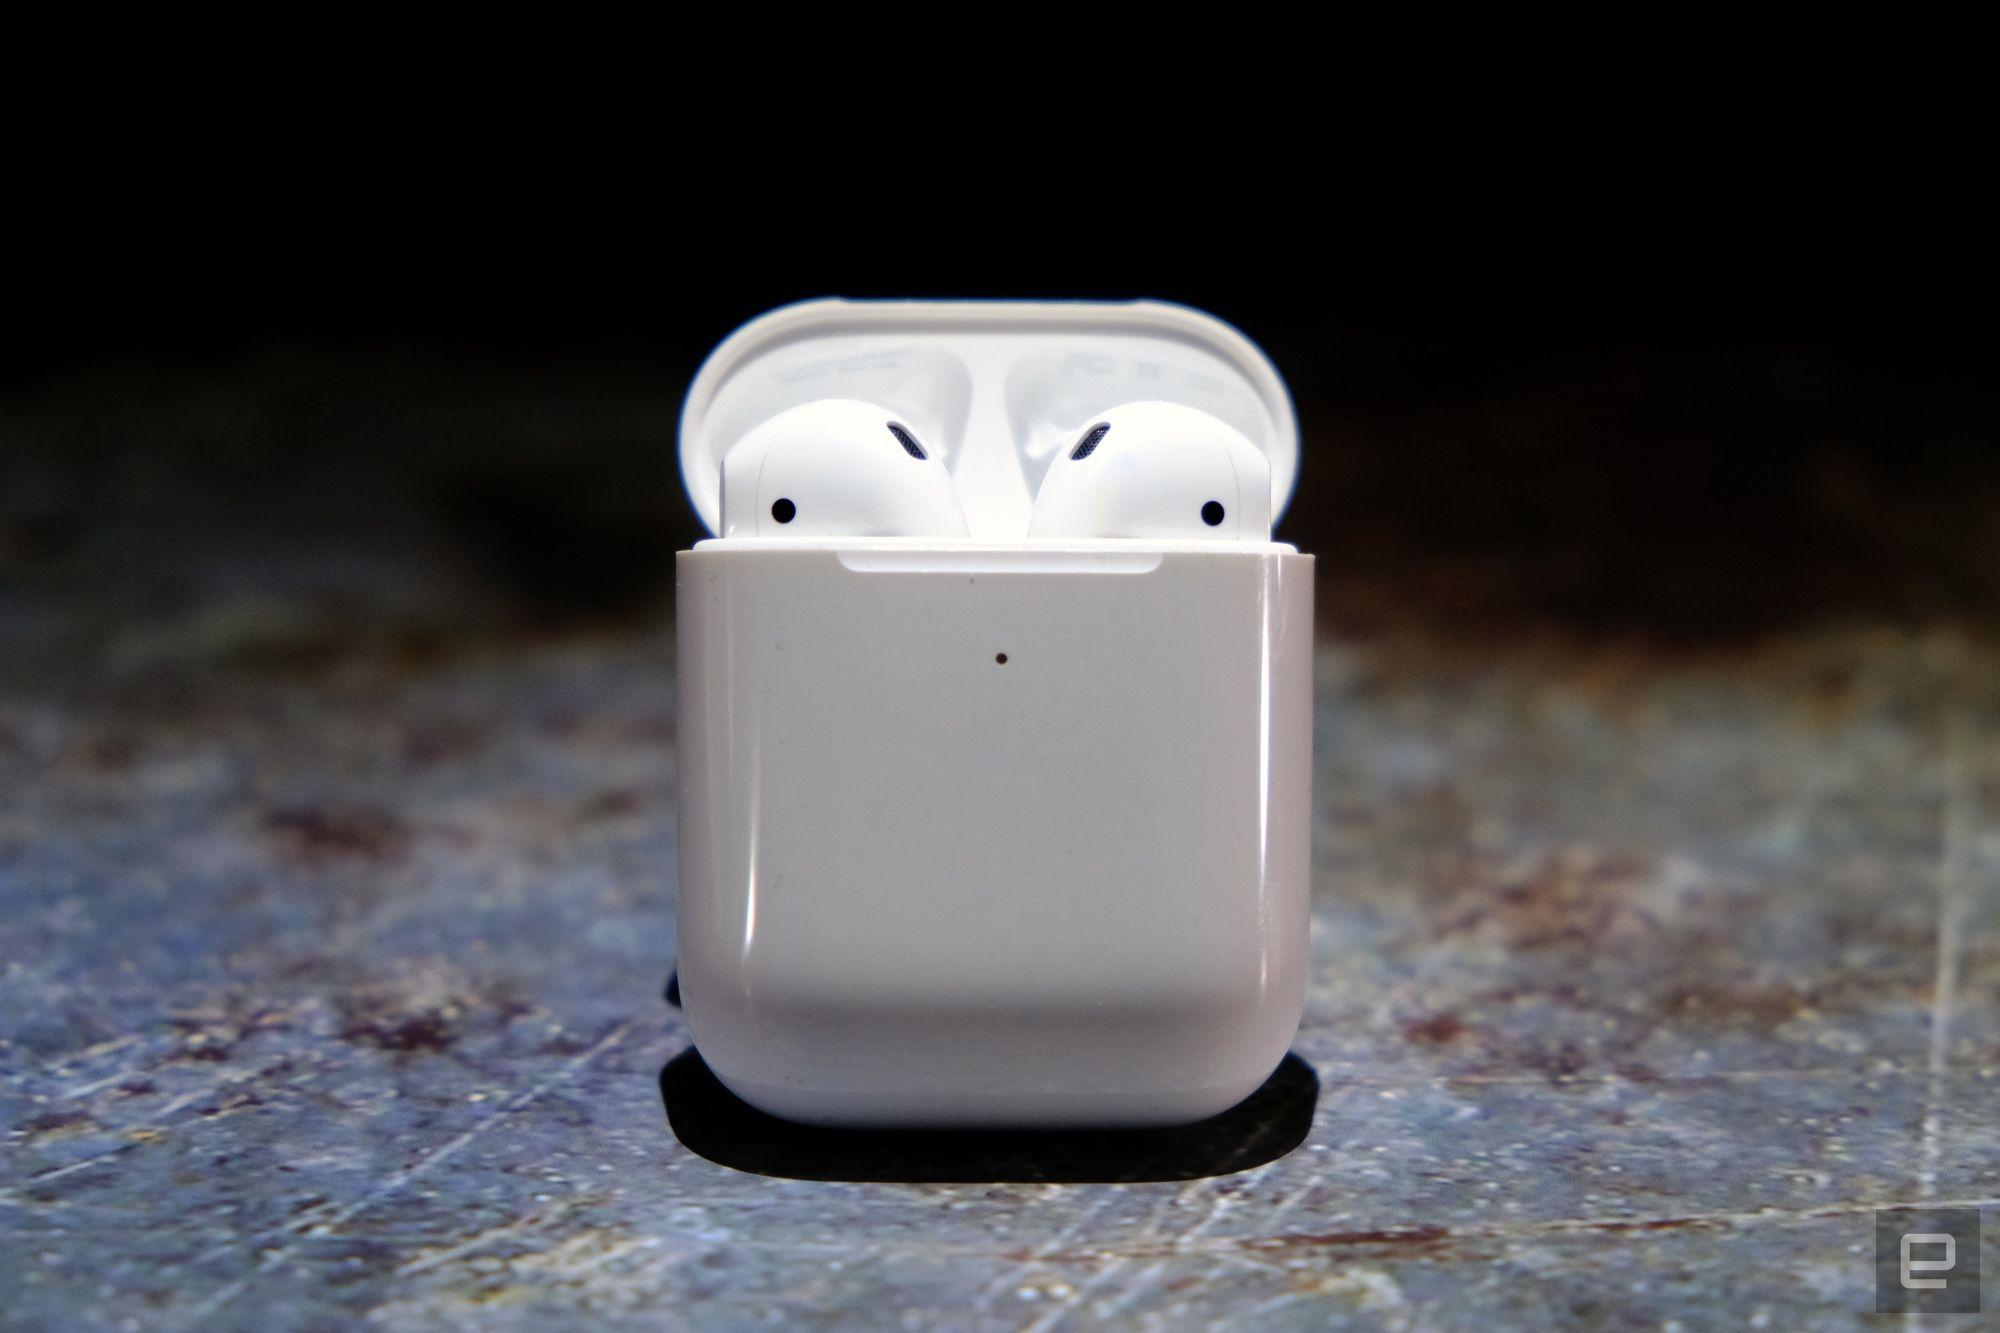 Apple AirPods with a wireless charging case hit a new low price of $108 | Engadget